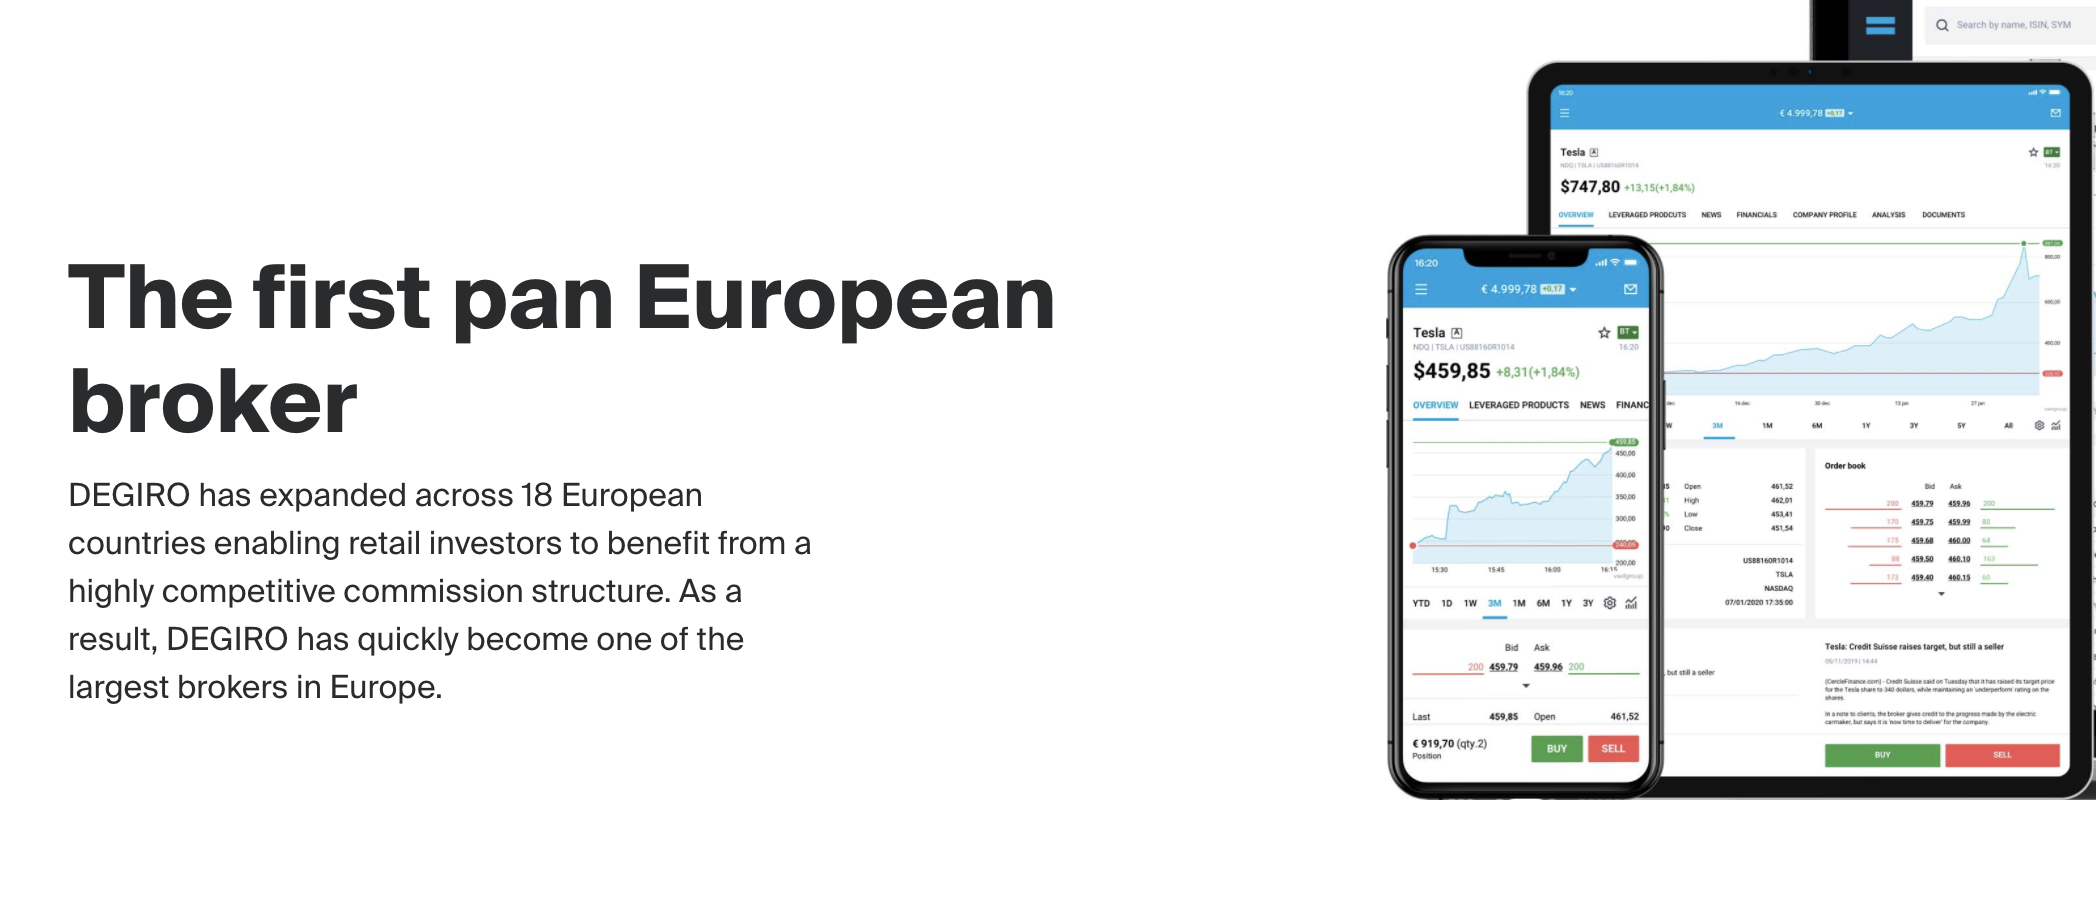 An image from degirogroup.com explaining that they were the first pan European broker. Images of the mobile and web versions are also shown.